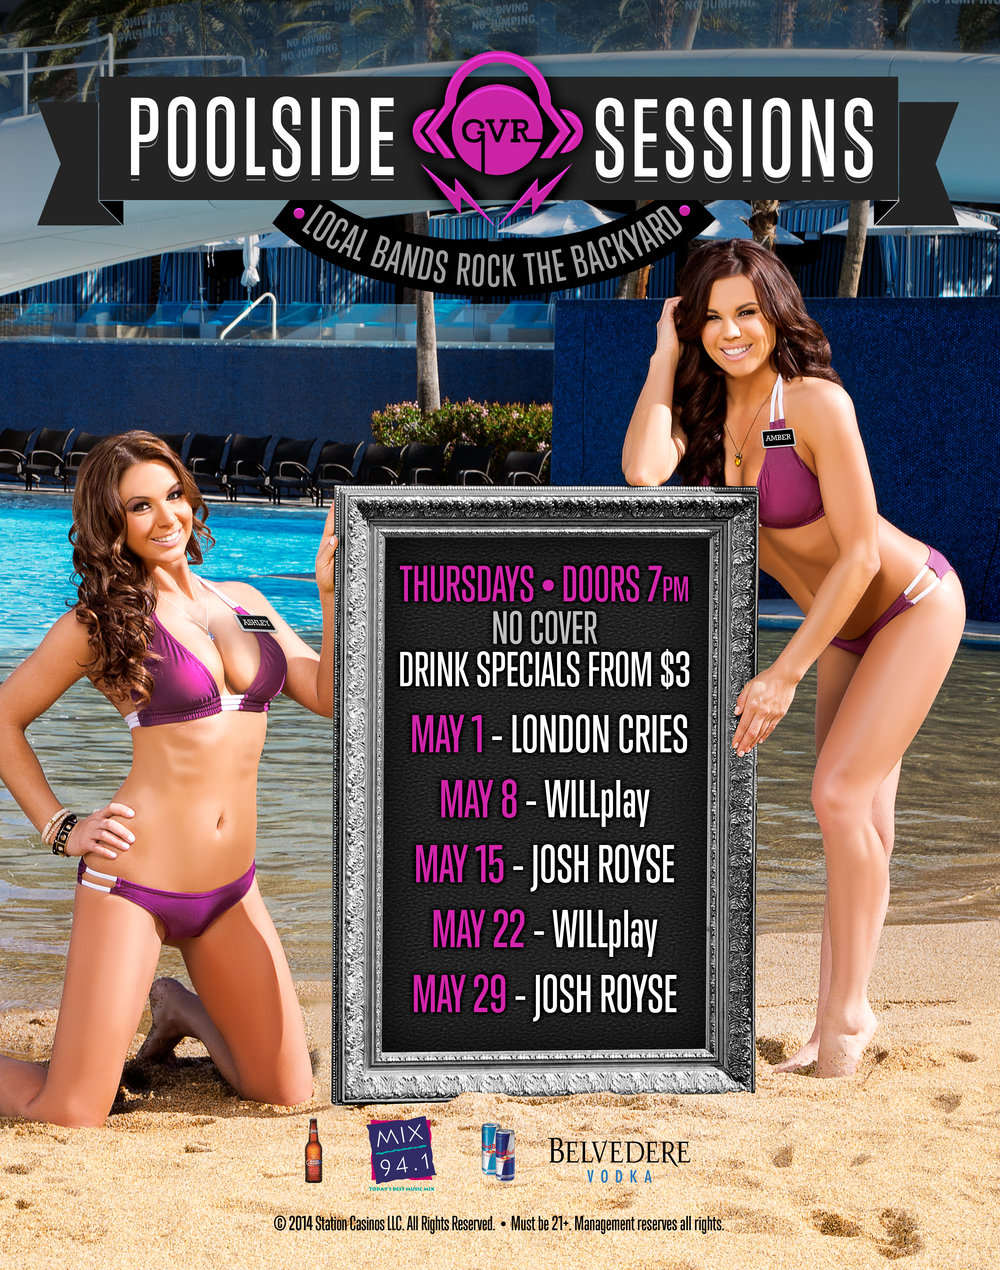 GREE 99426 Poolside sessions poster.jpg